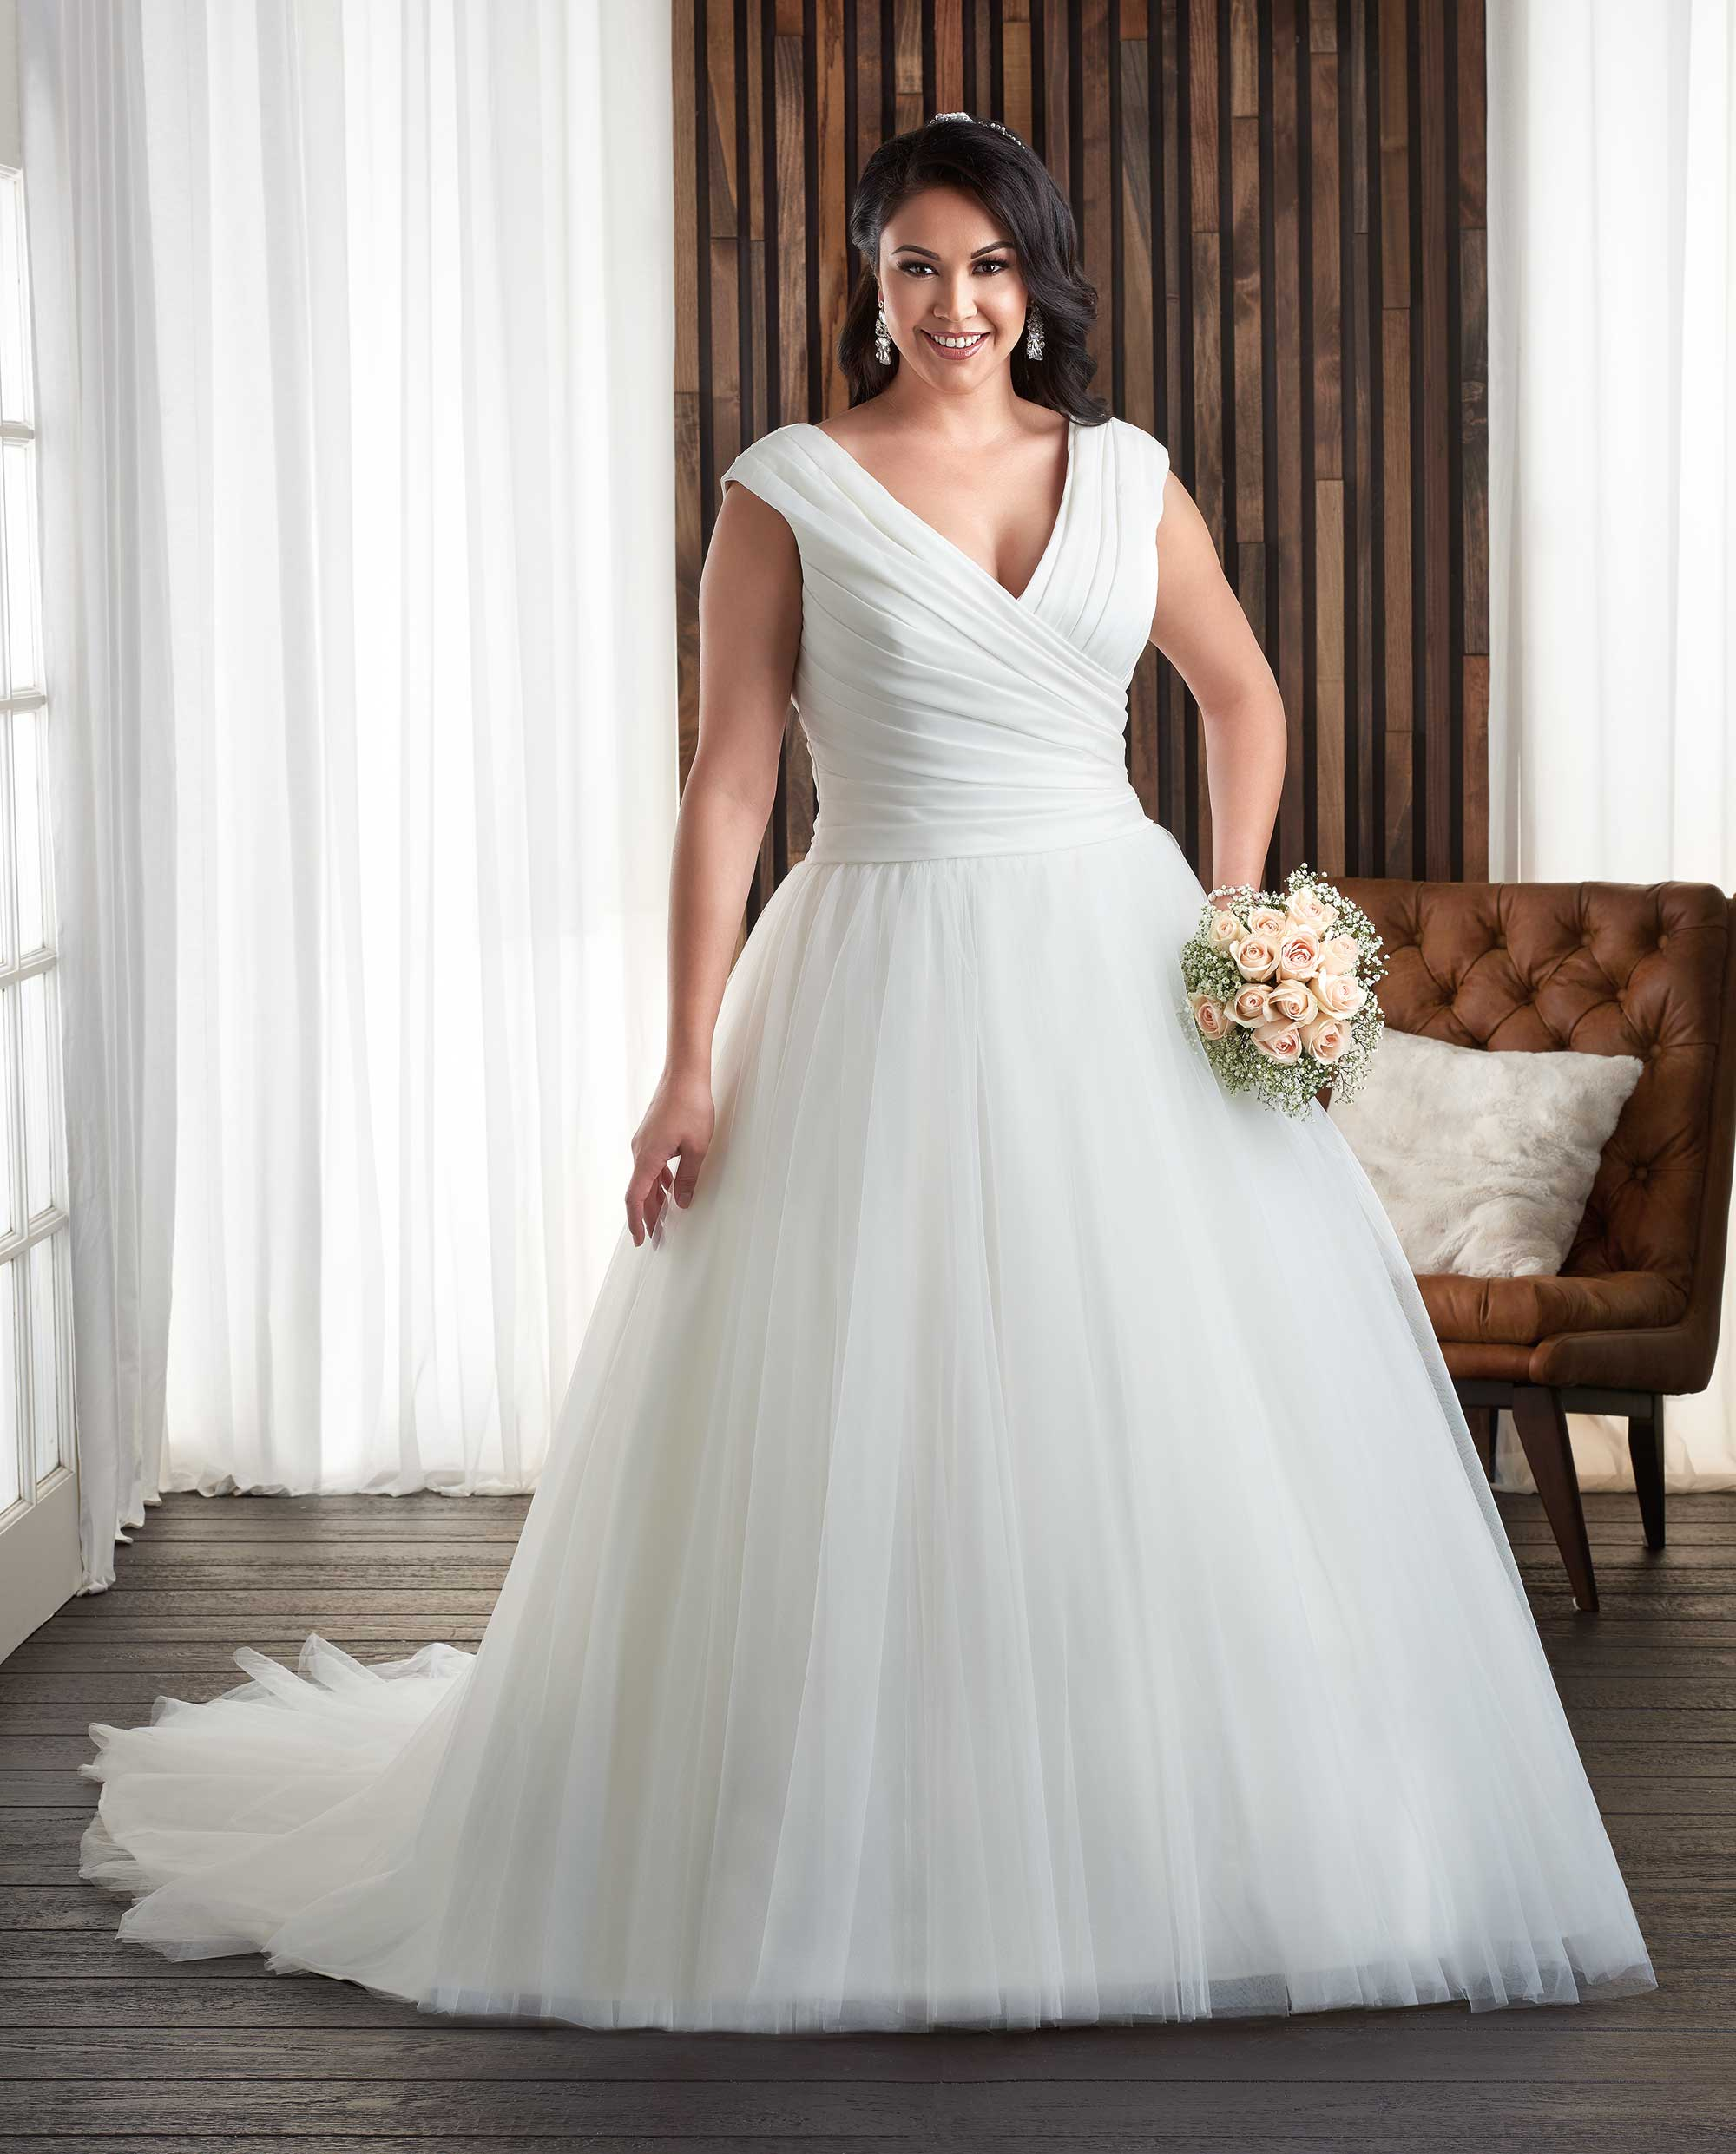 Discover dresses in size 34 in numerous designs